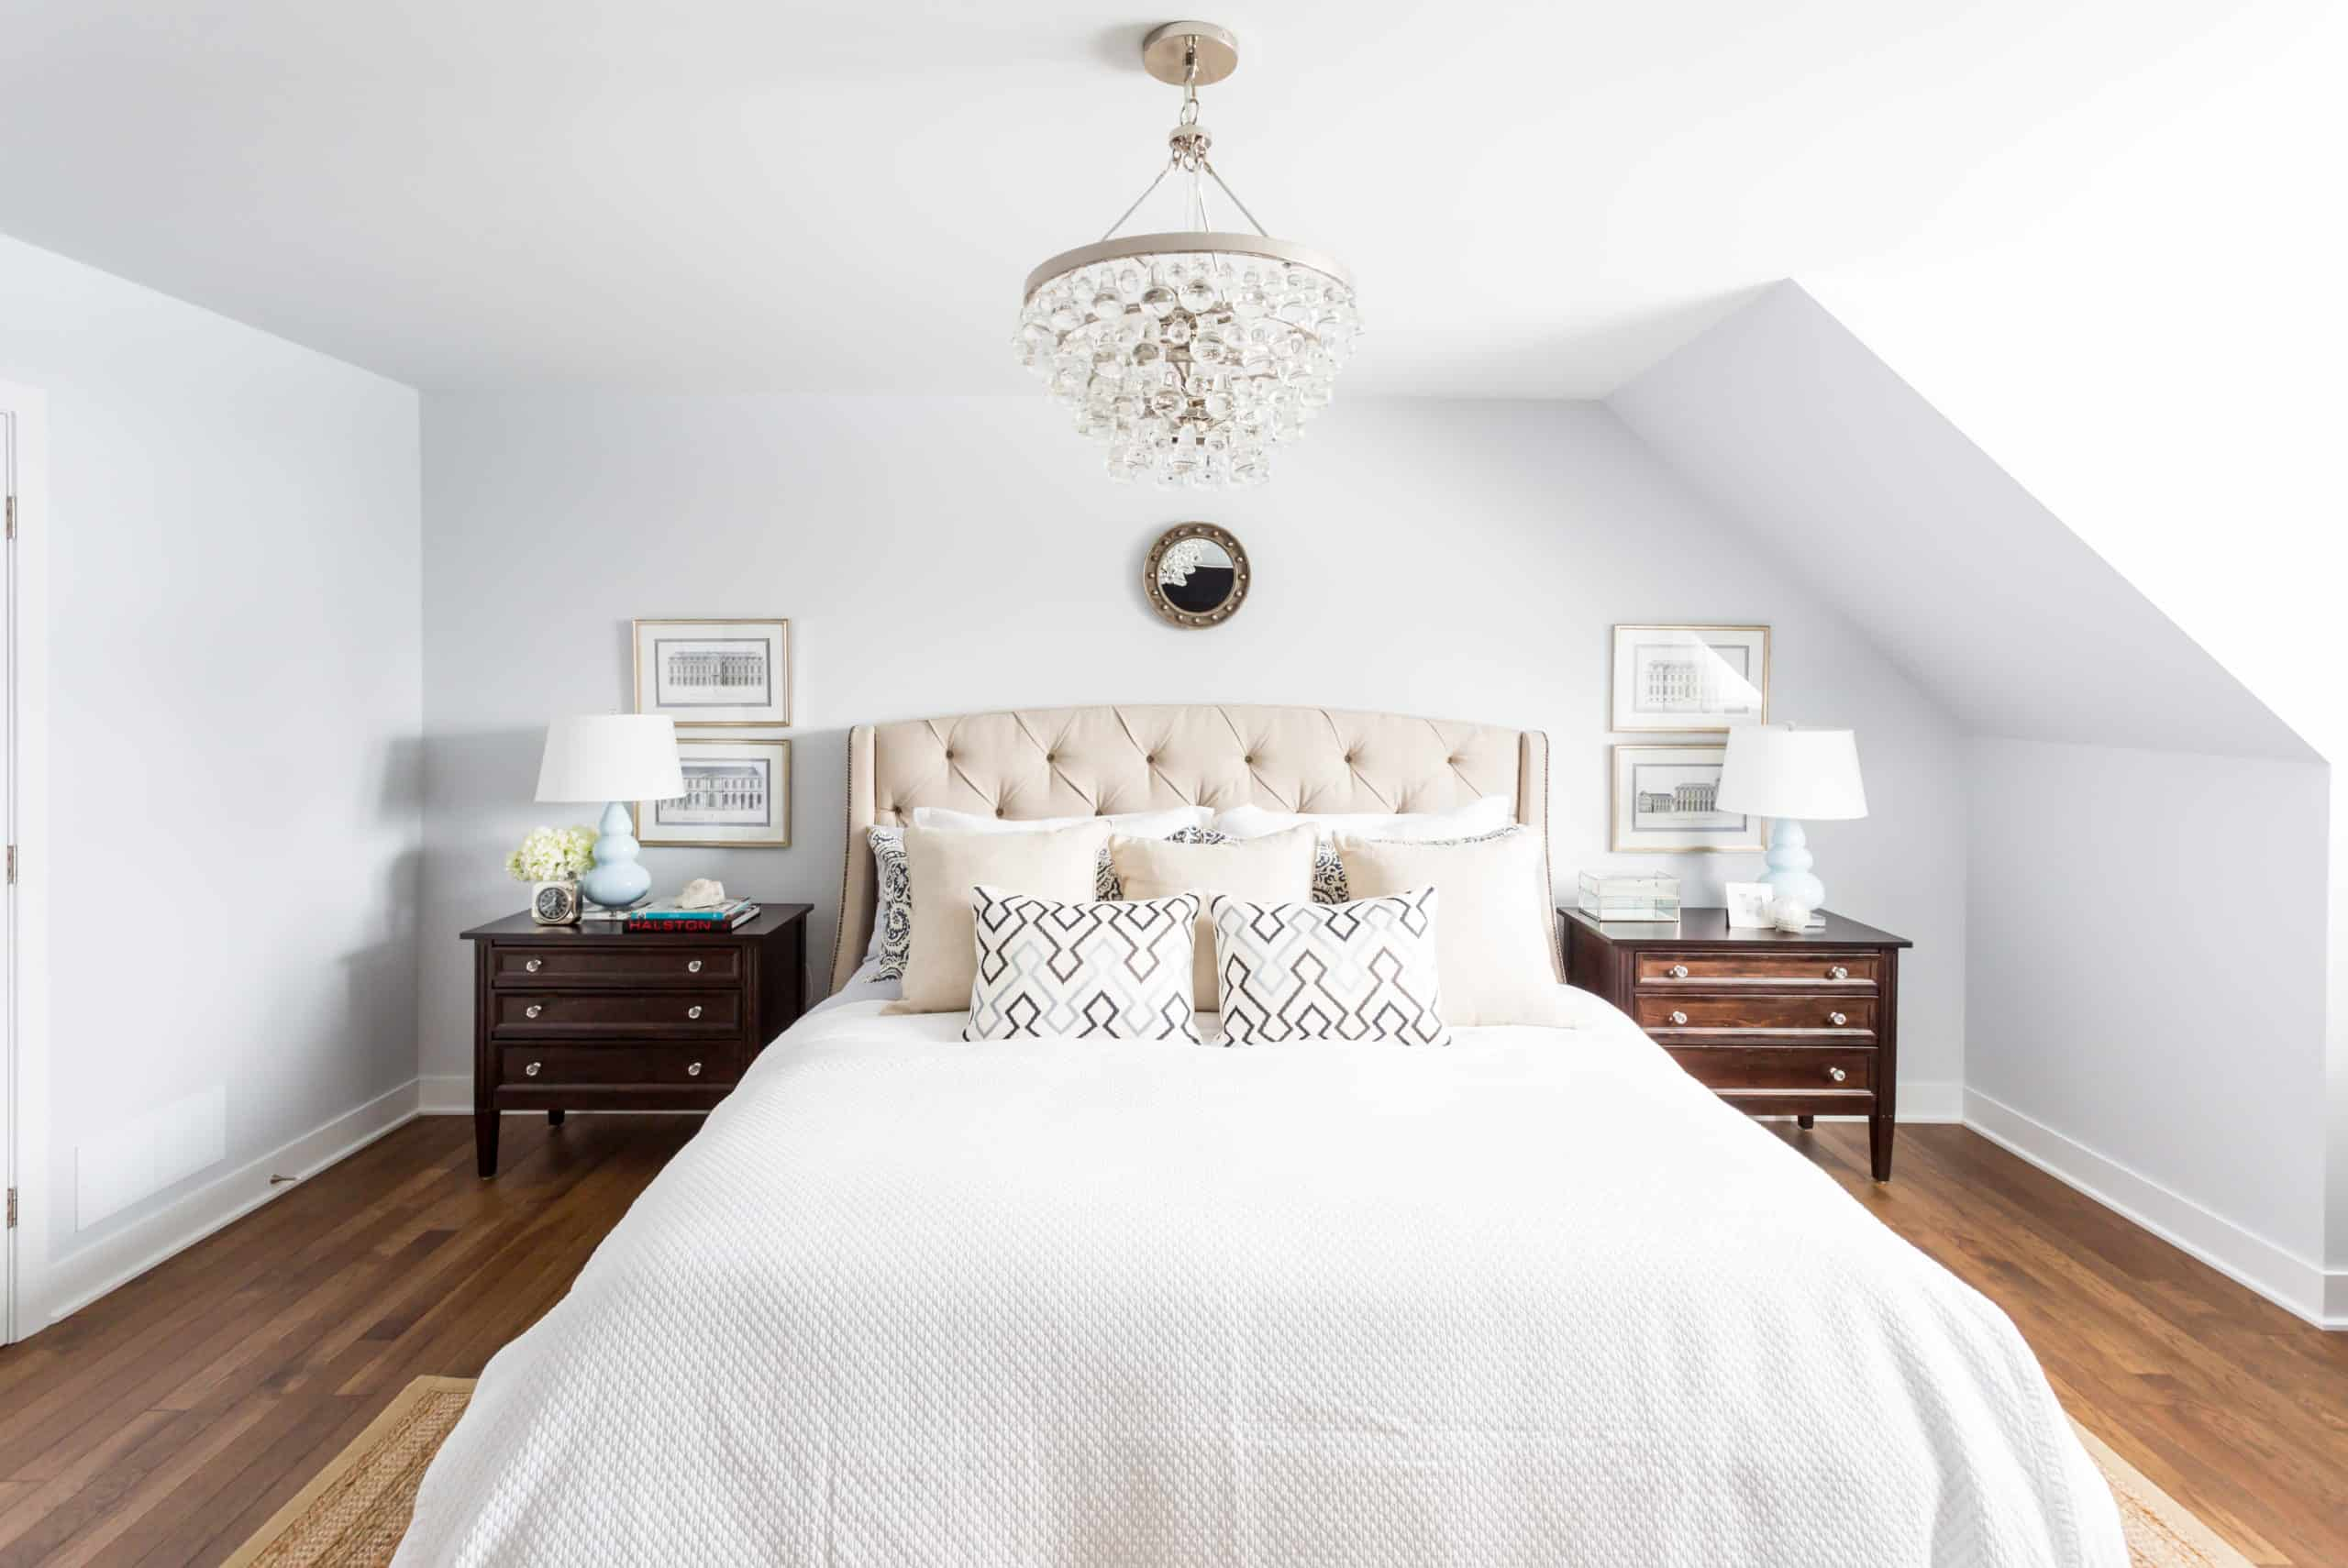 Bright white master bedroom with a chandelier above the bed